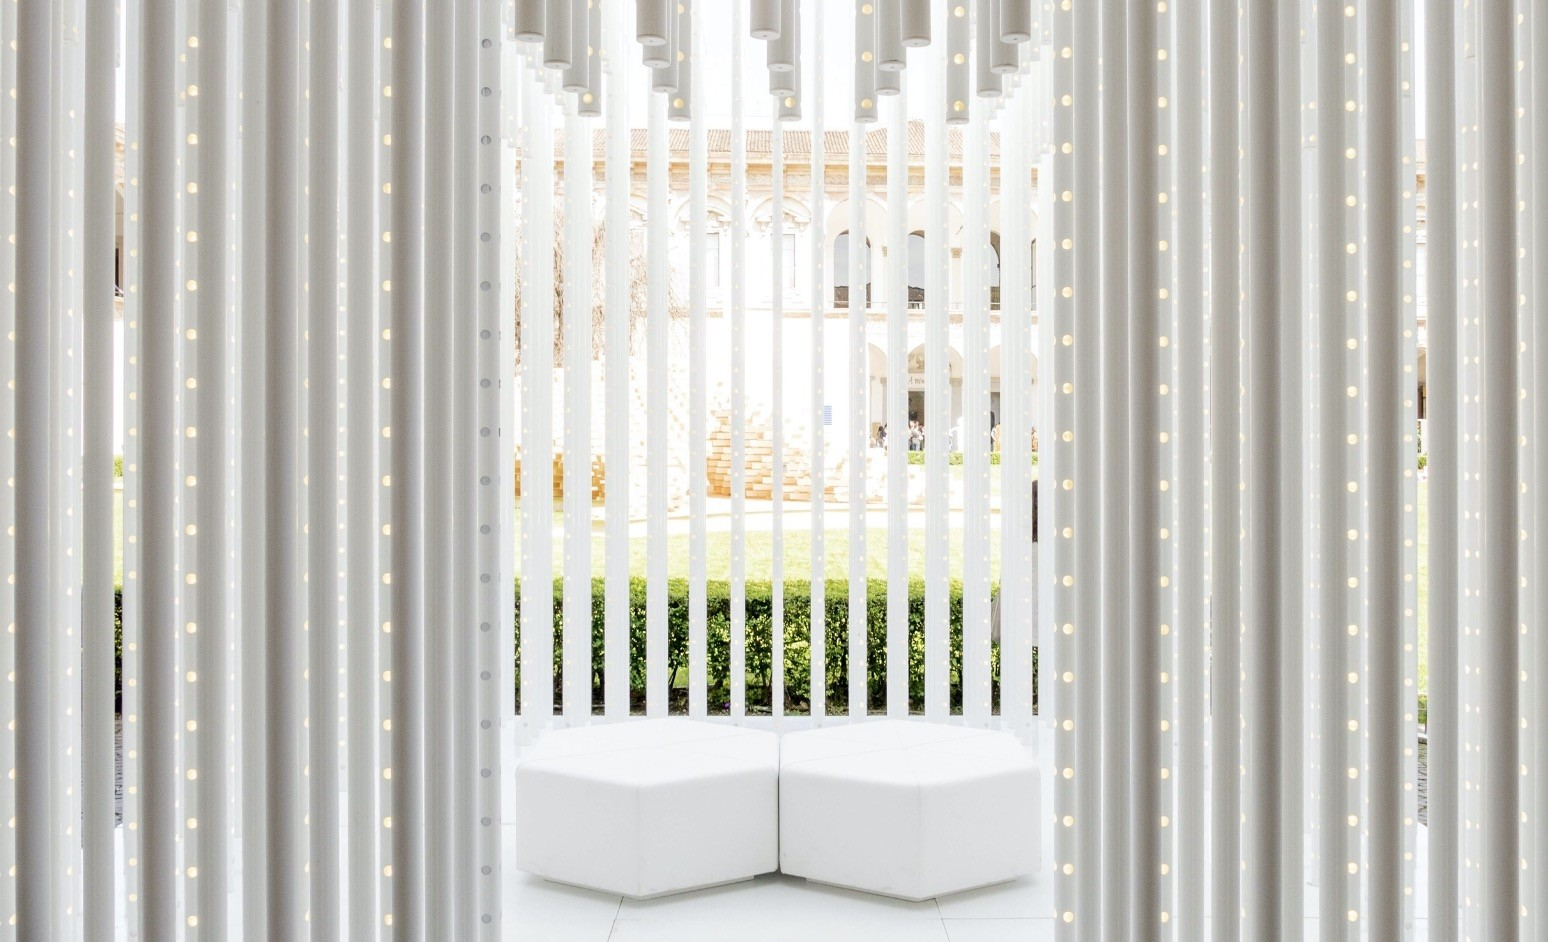 The installation is shaped by the construction of a cubic form, representing the concept of home in its simplest form by using a series of white panels.